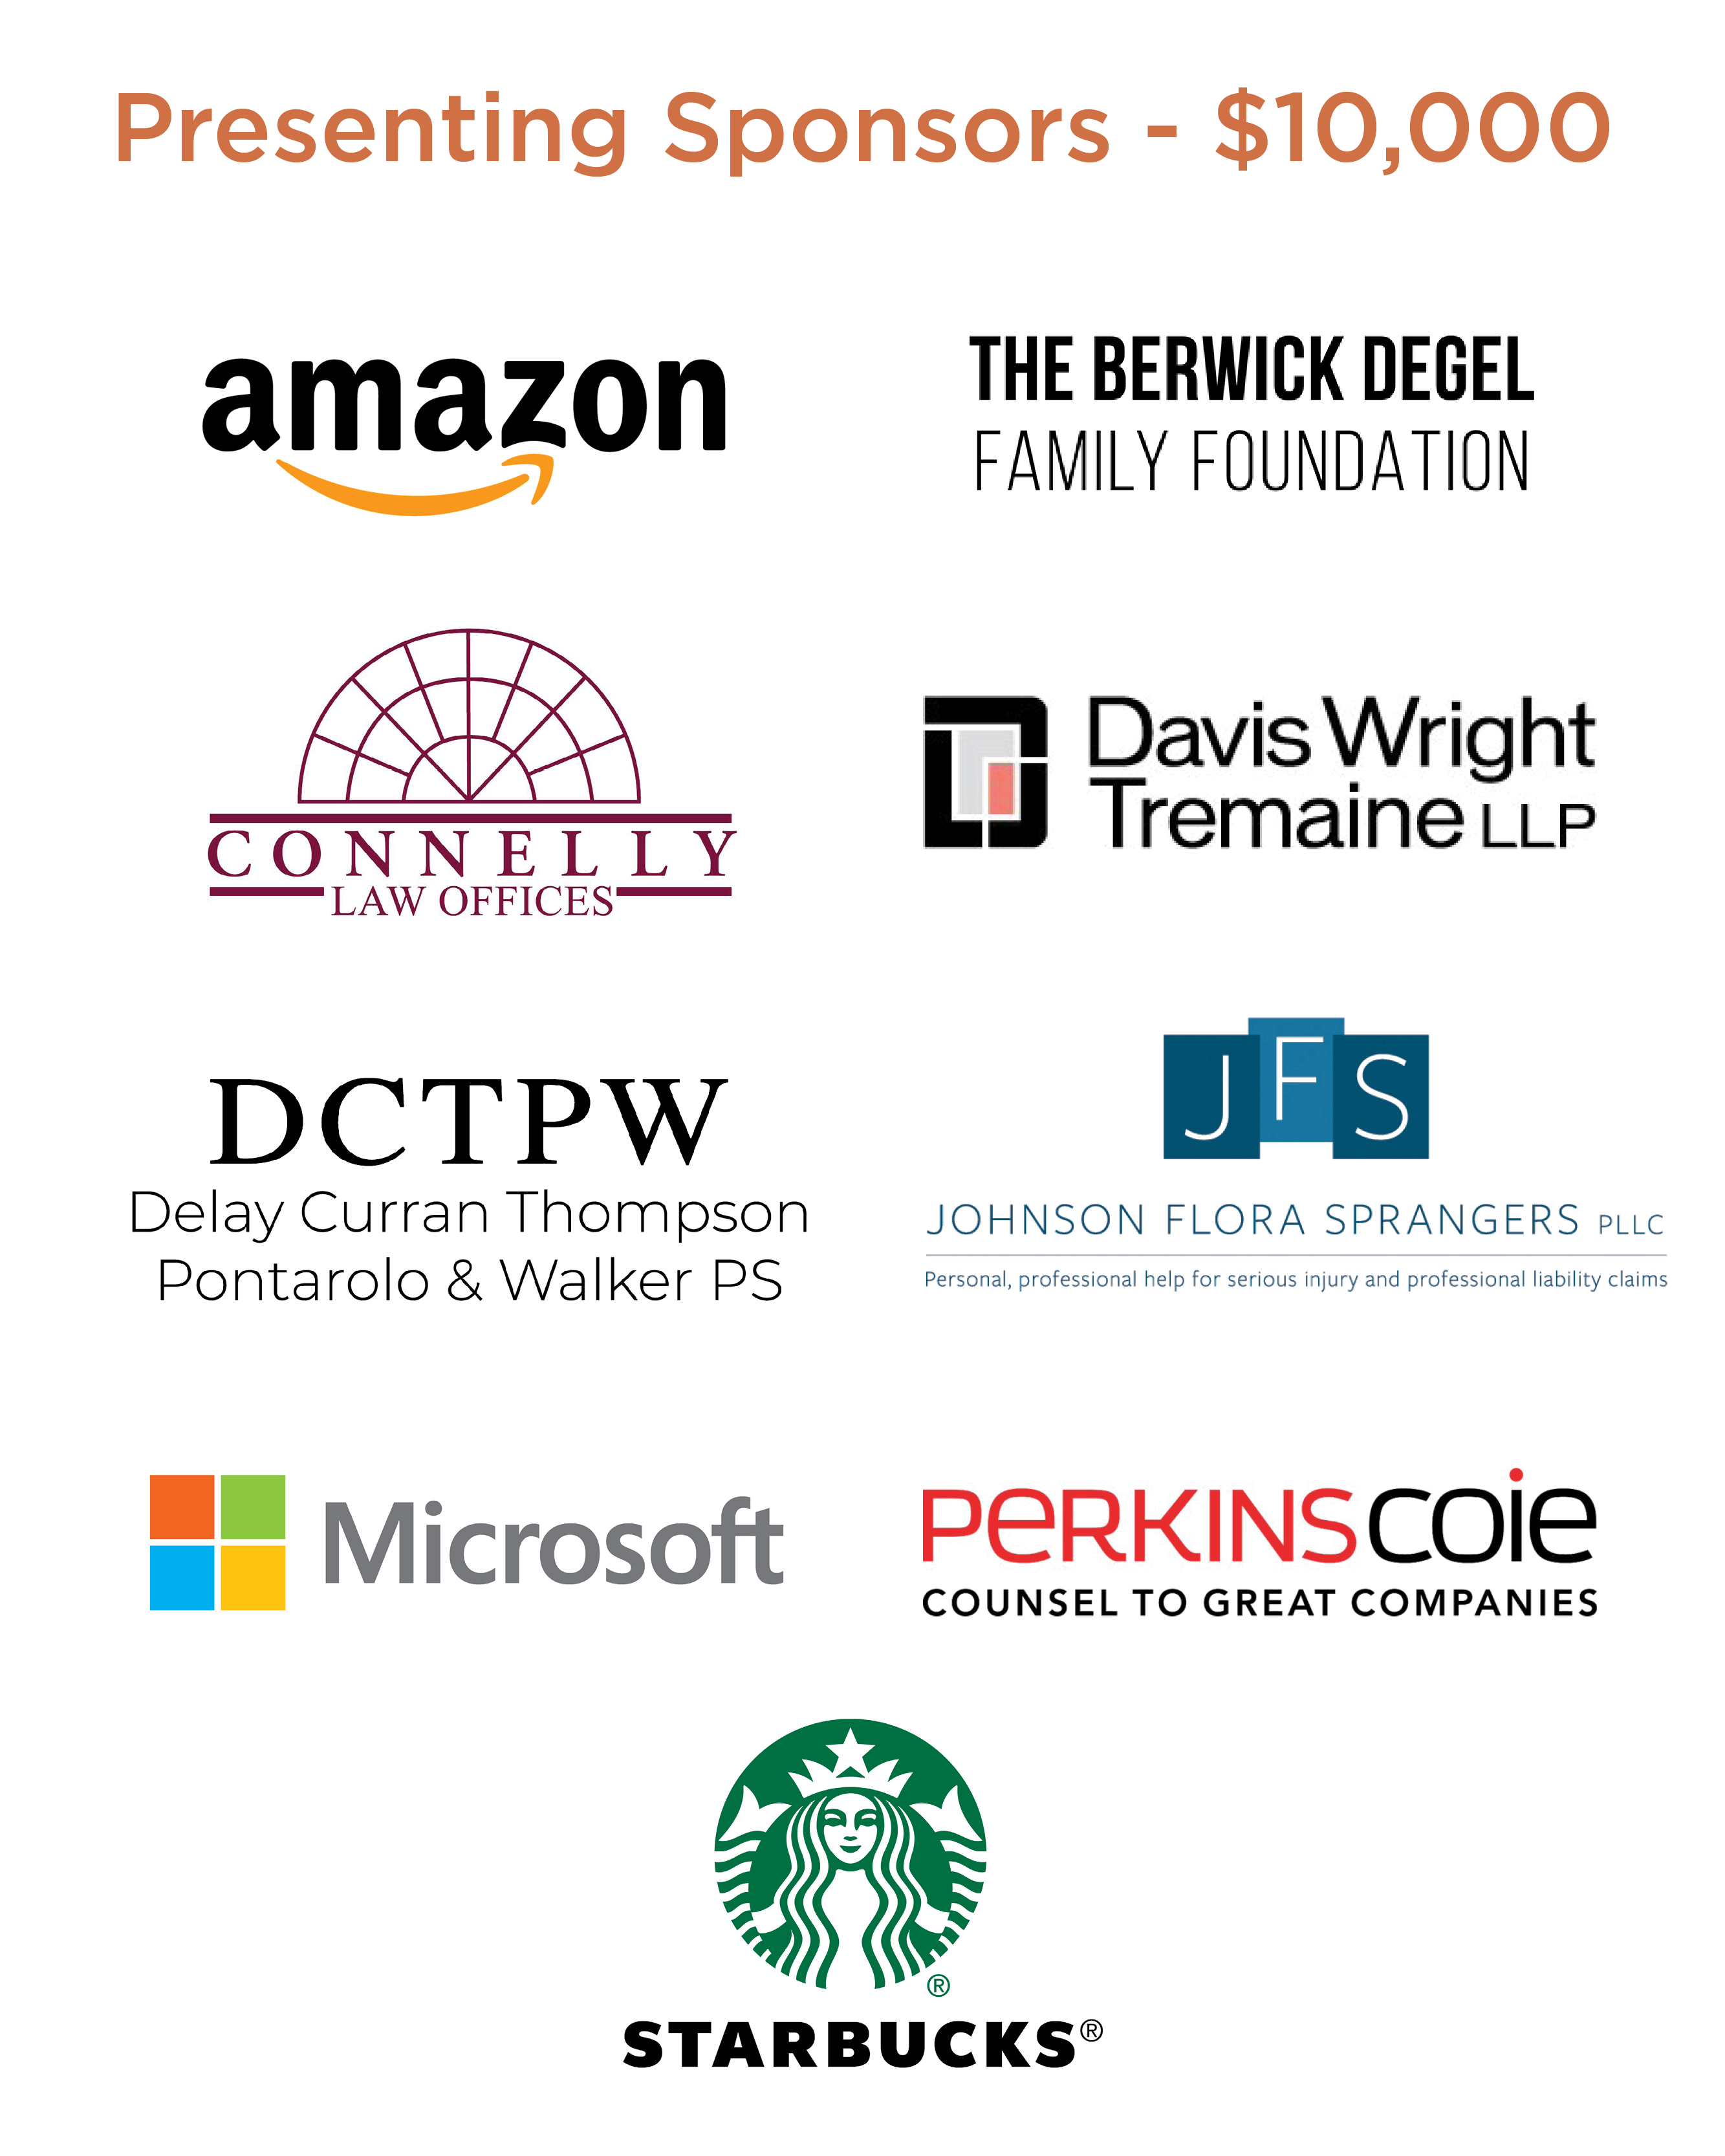 Presenting Sponsors - $10,000 : Amazon, The Berwick Degel Family Foundation, Connelly Law Offices, Davis Wright Tremaine LLP, Delay Curran Thompson Pontarolo and Walker PS, Johnson Flora Sprangers PLLC, Microsoft, Perkins Coie, Starbucks